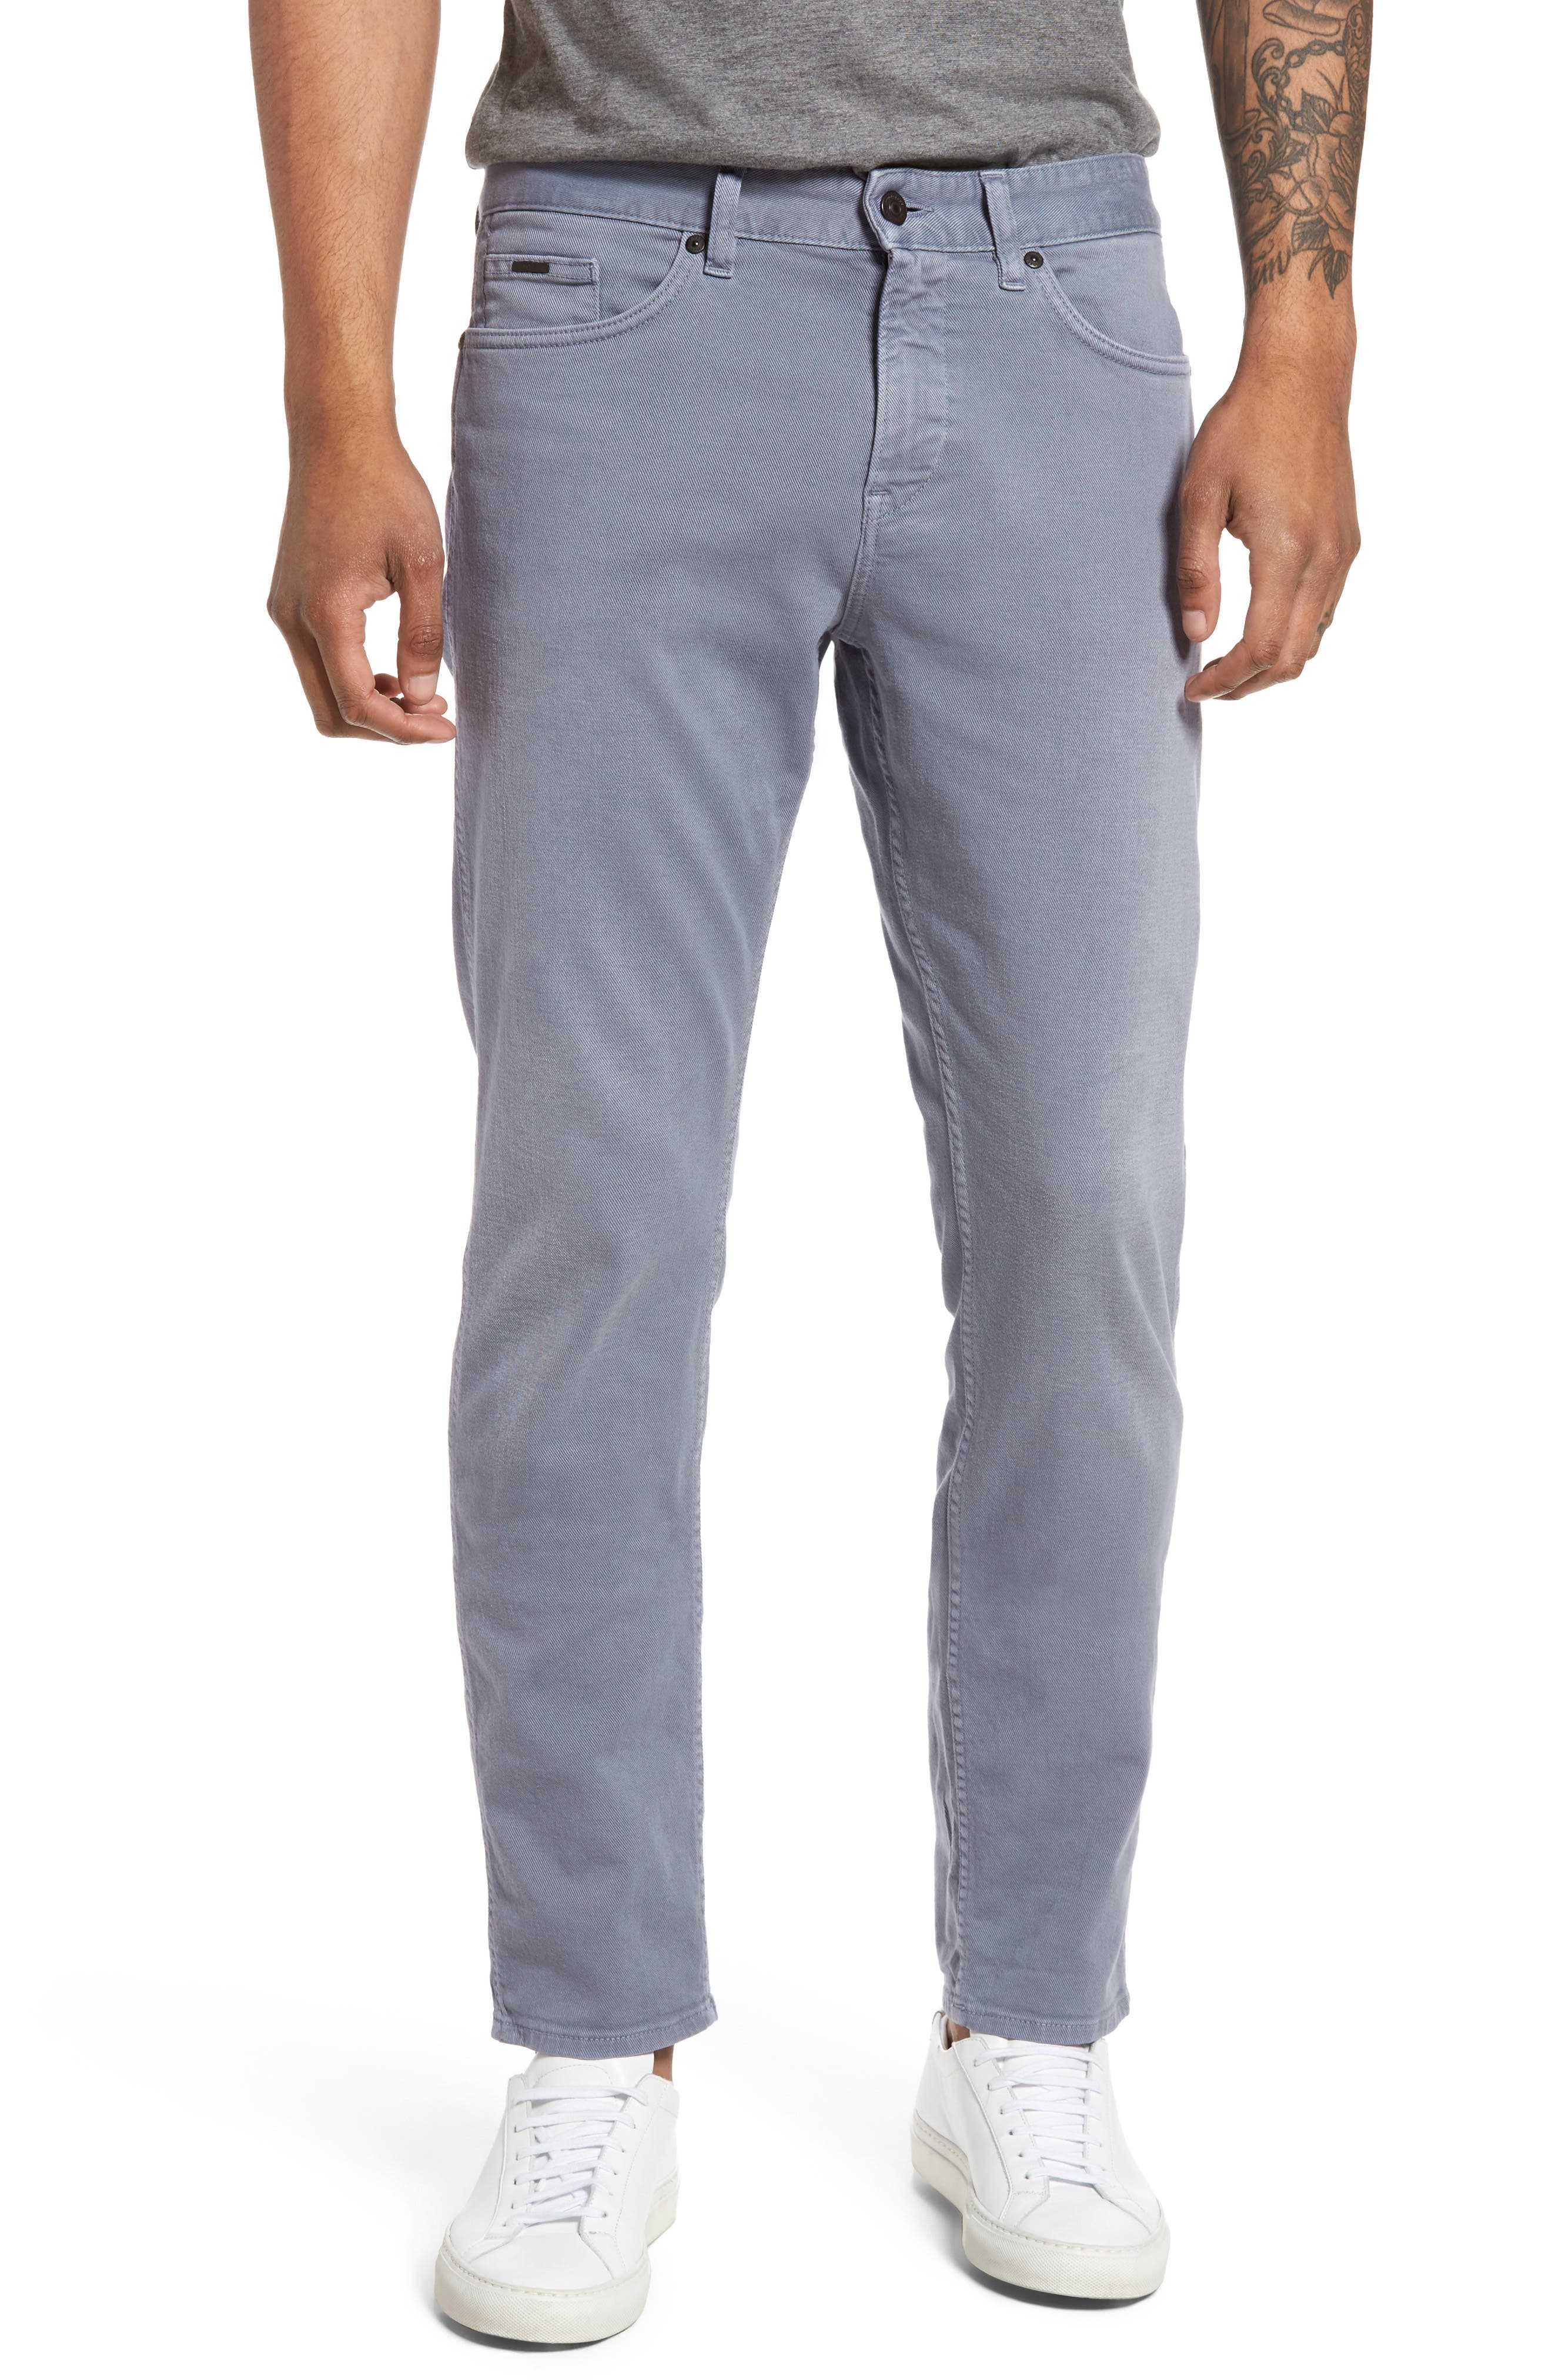 Delaware Slim Fit Jeans,                         Main,                         color, Blue